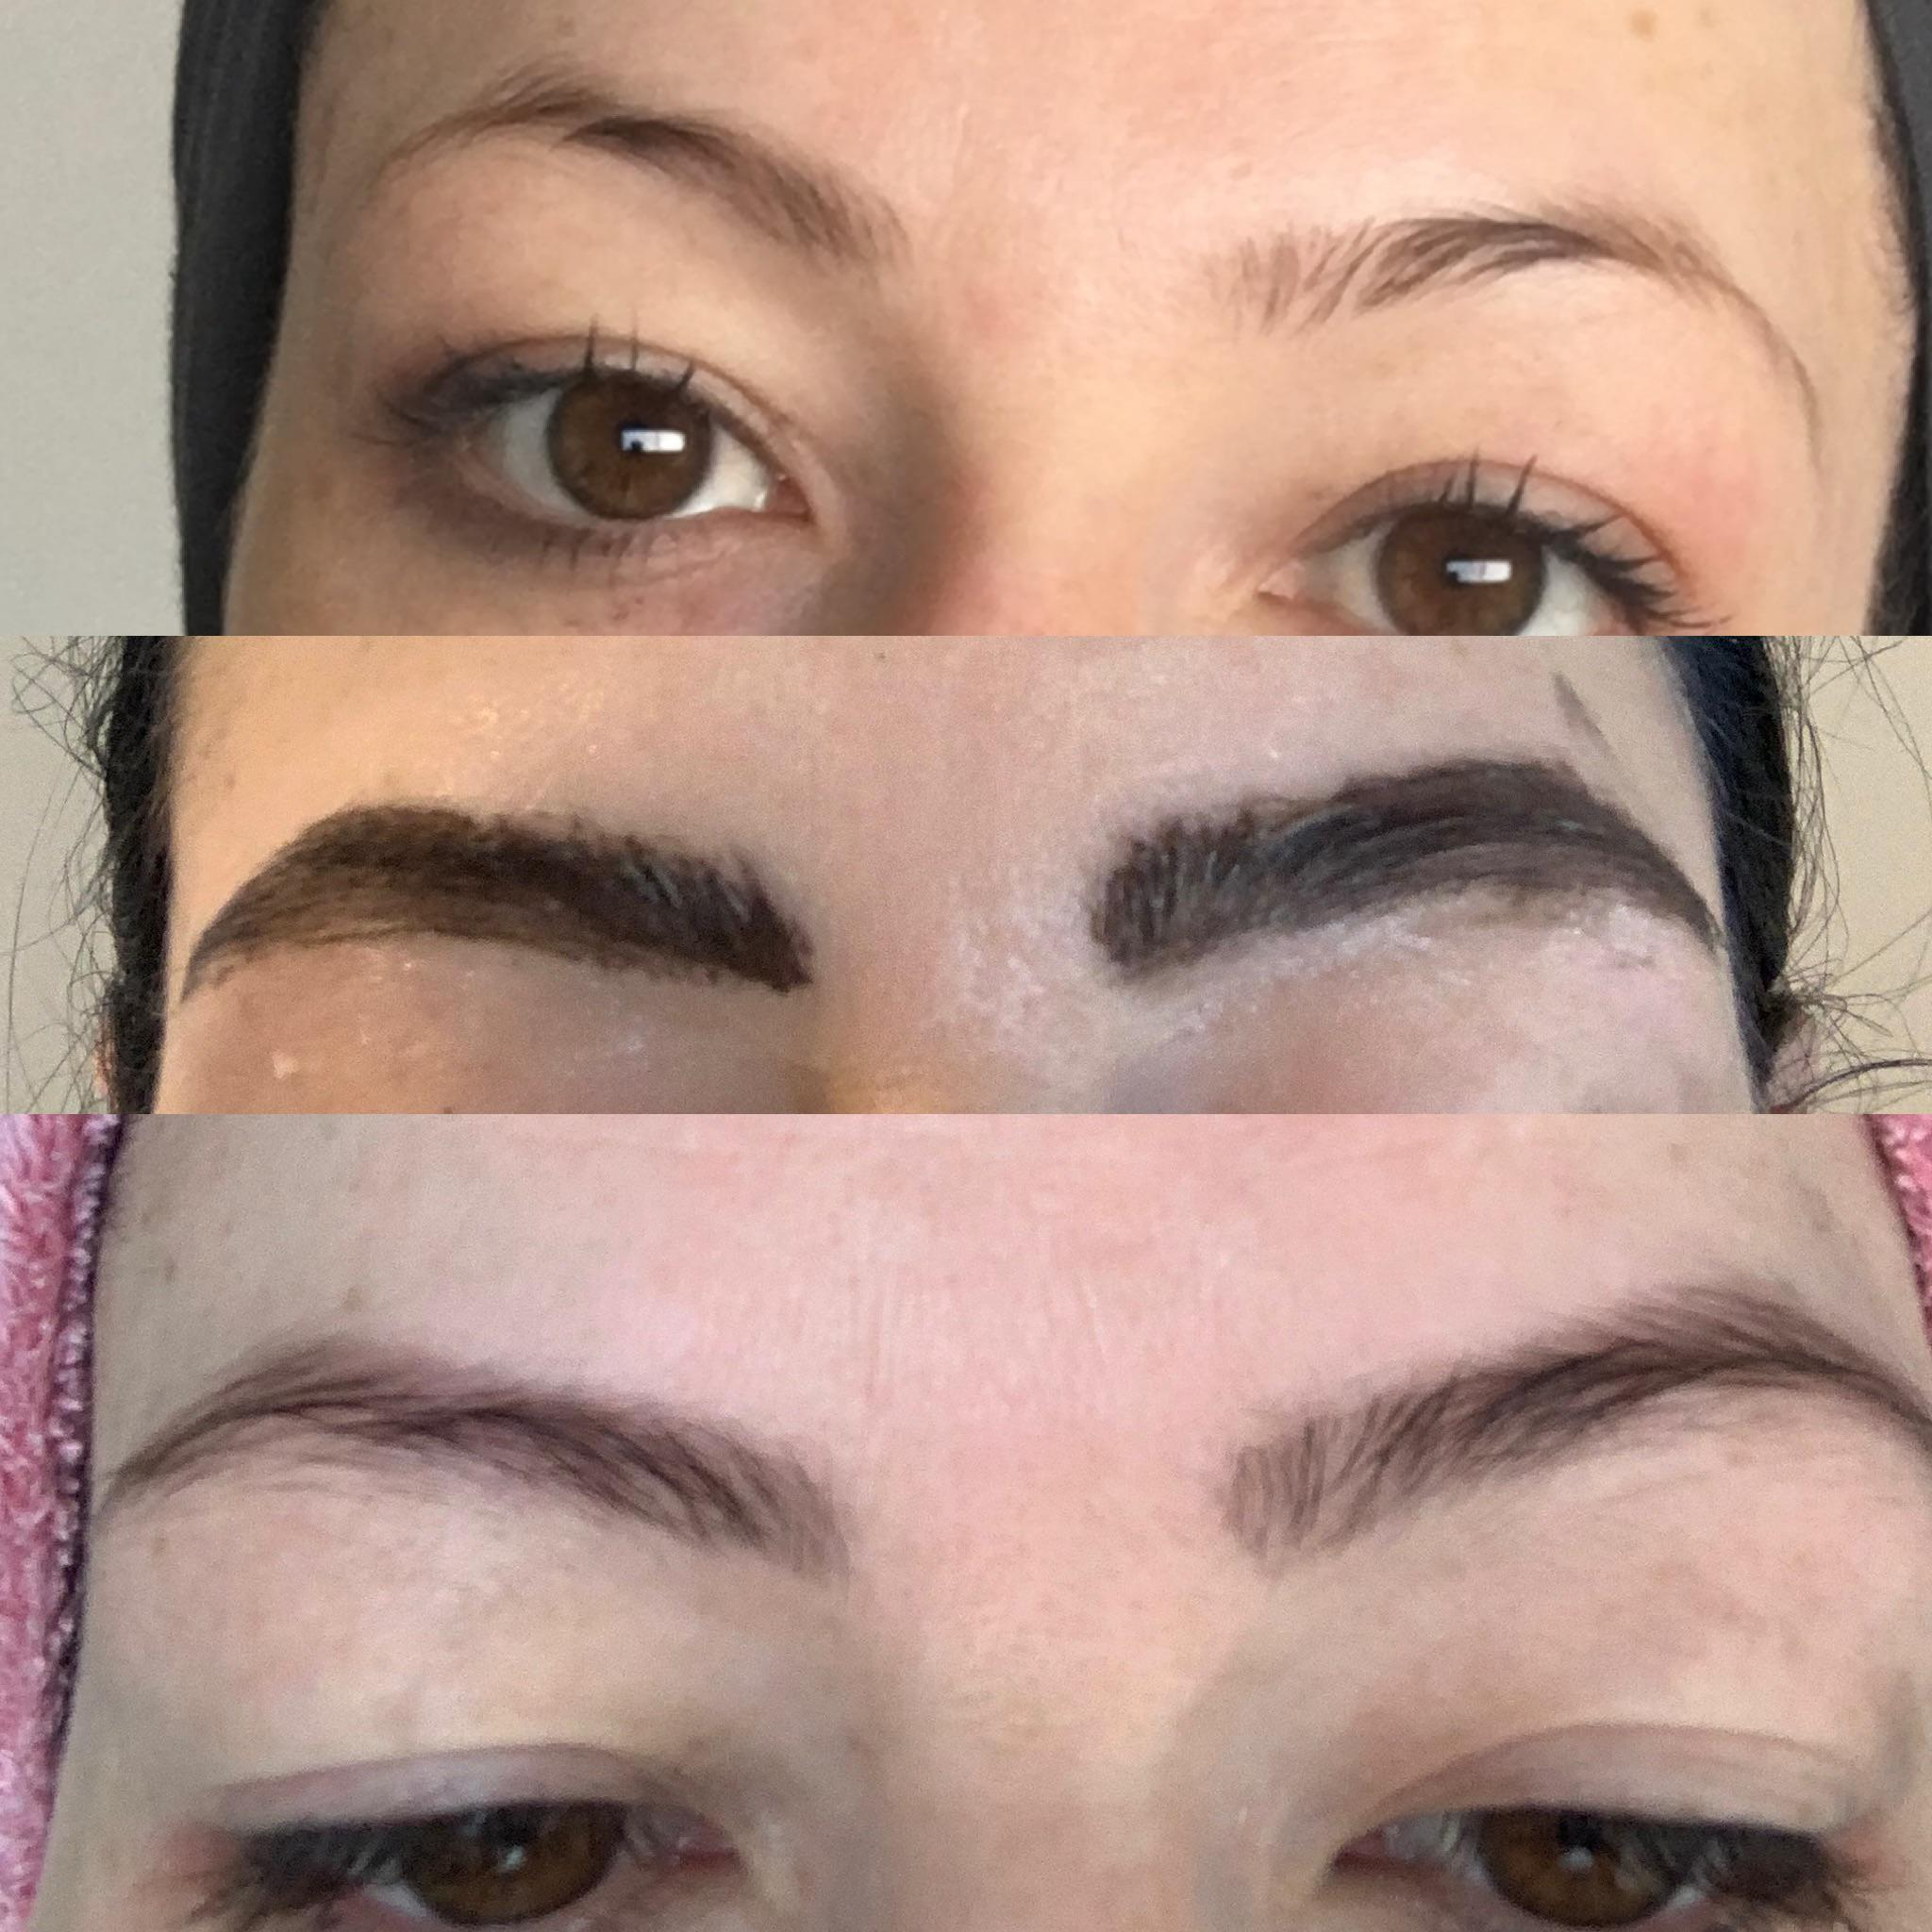 I Ve Always Had Thin Sparse And Light Eyebrows And Filling Them In On The Daily Is Tiresome So I Tinted Them At Home With Beard Dye And The Results Are Awesome